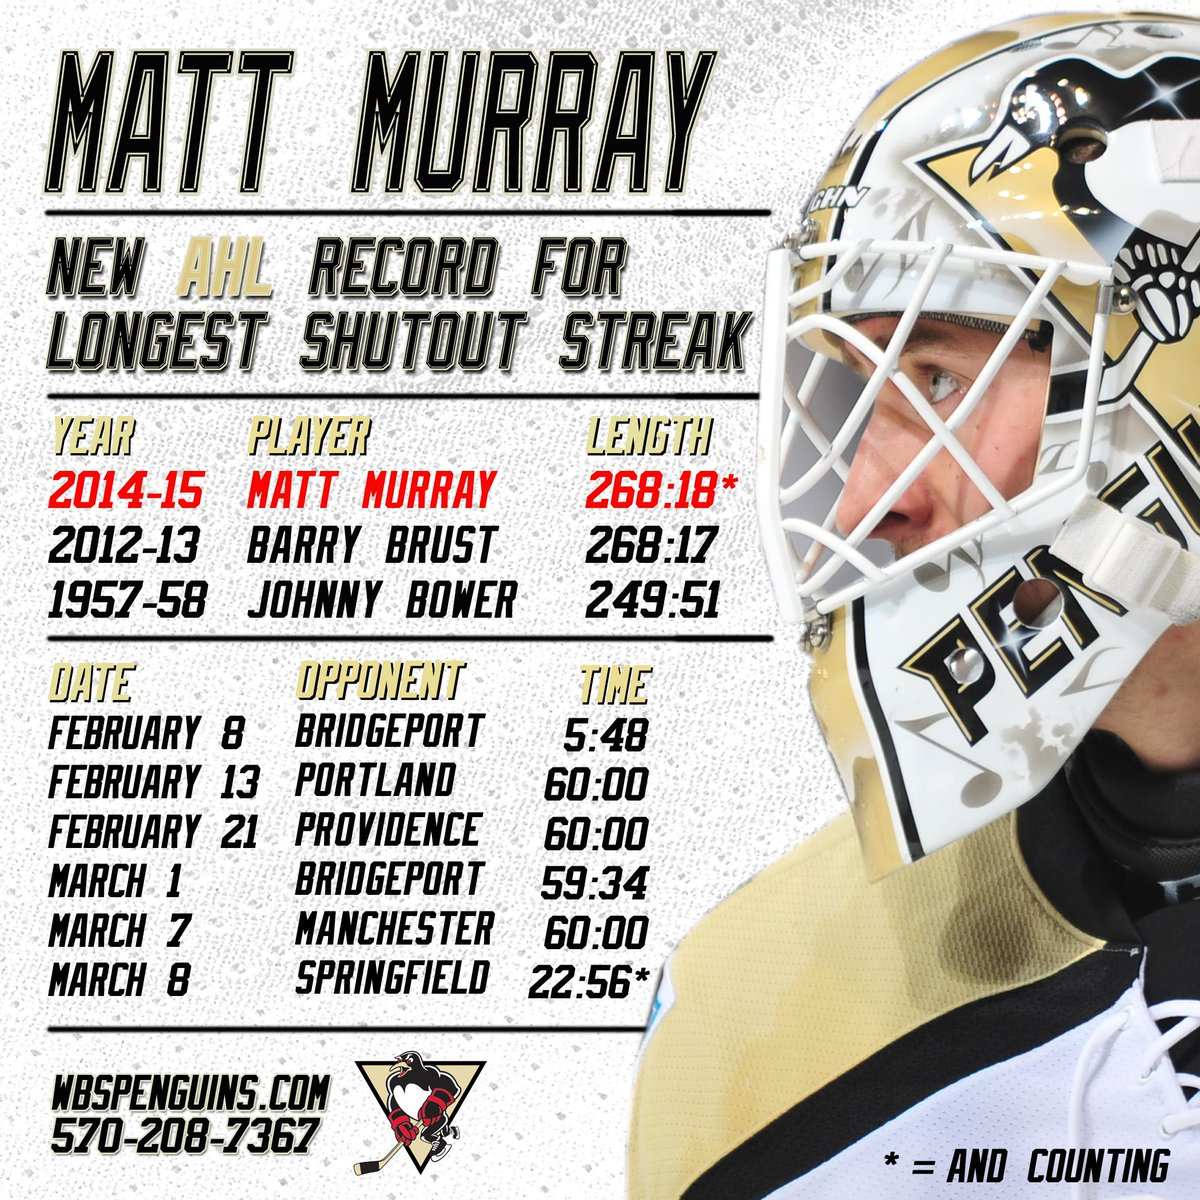 THERE IT IS!  New AHL record for Matt Murray! http://t.co/ZpB77wIALD